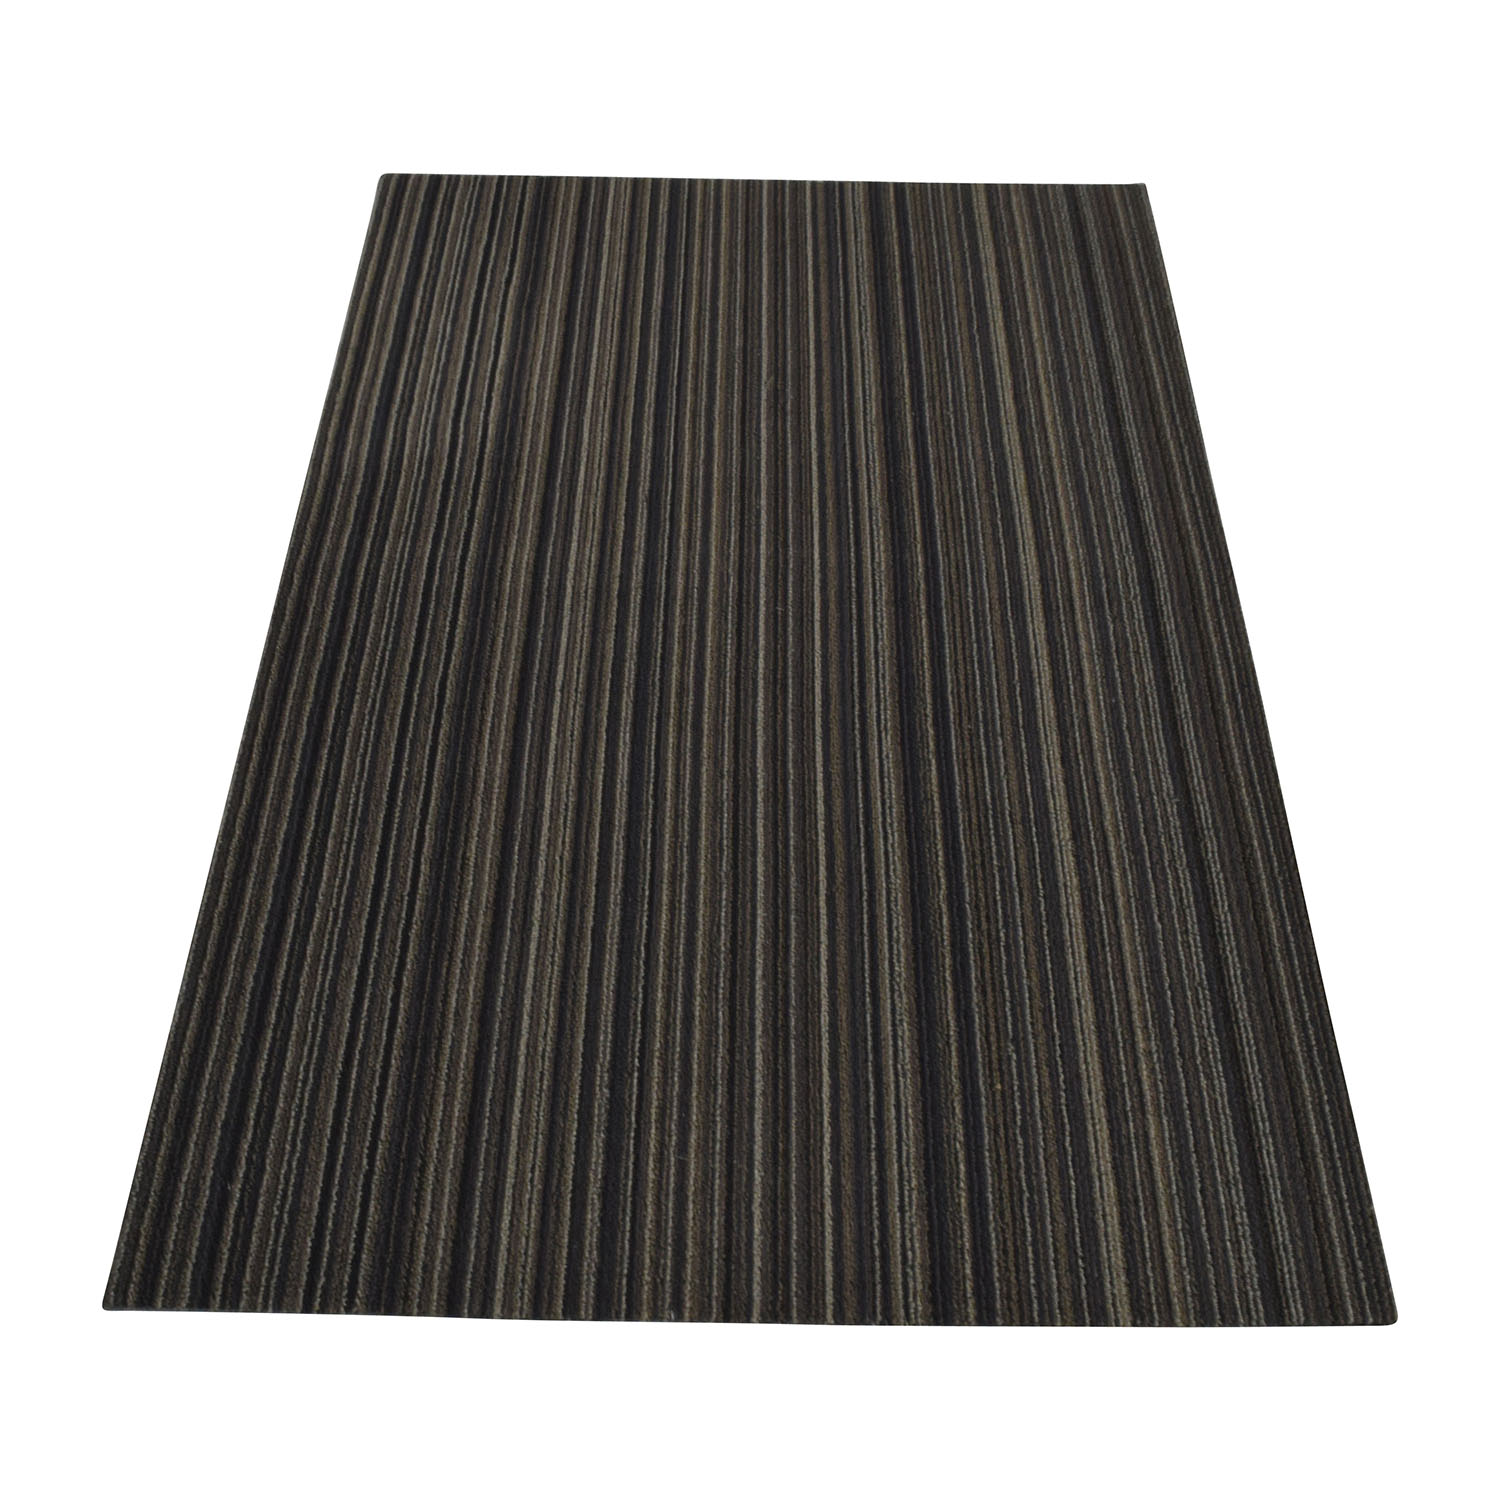 Crate & Barrel Chilewich Brown Striped Rug / Rugs